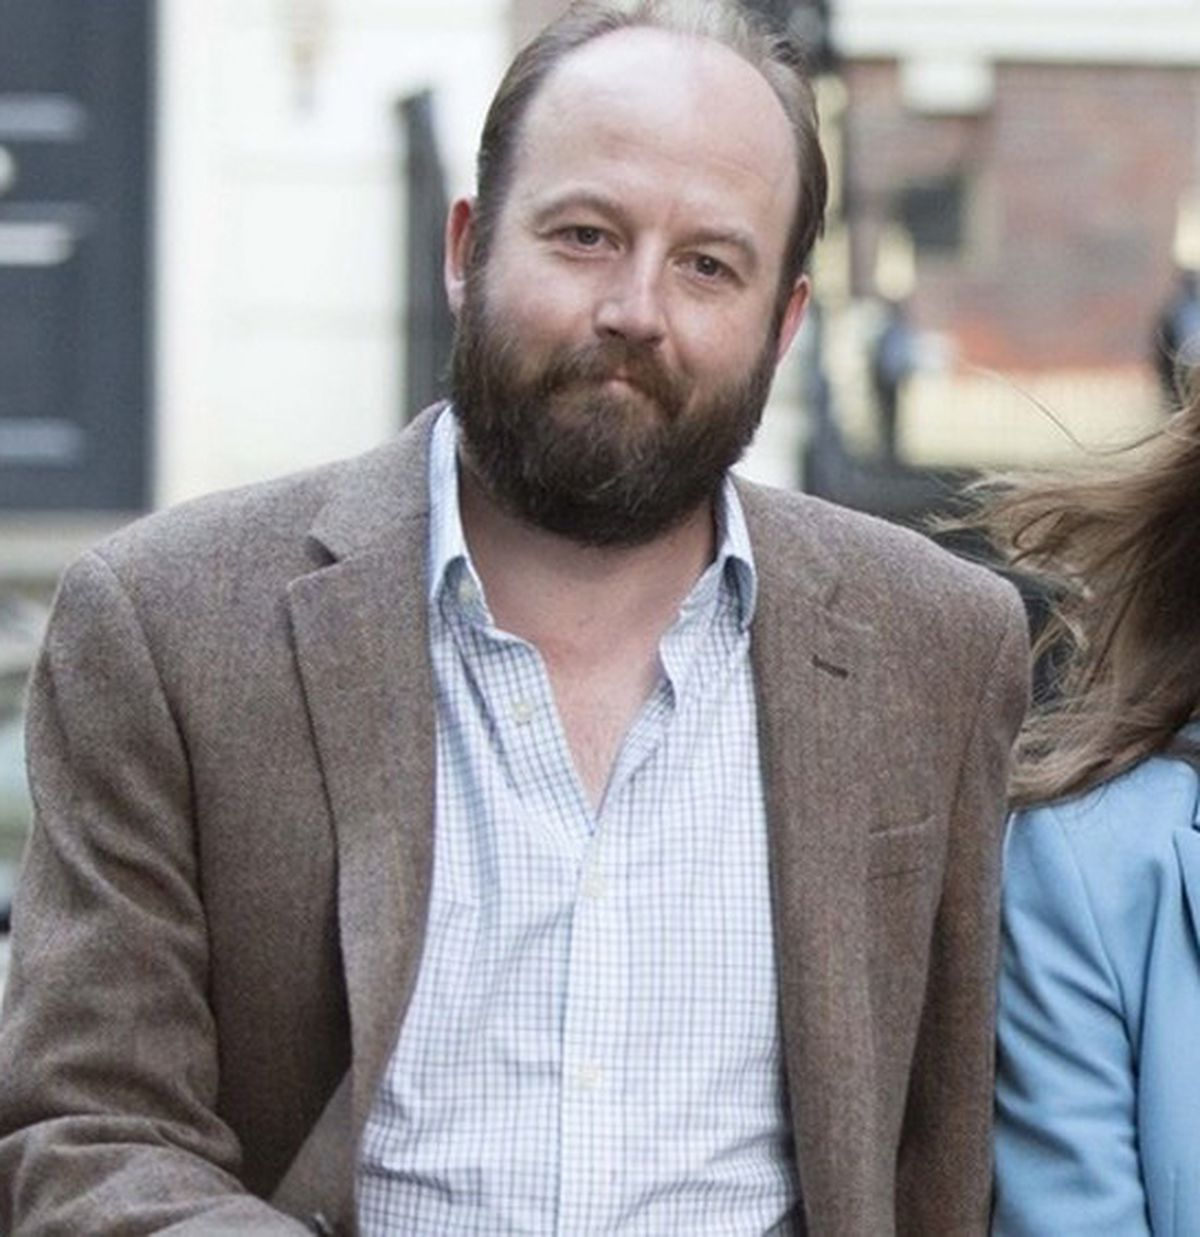 Nick Timothy was rejected by a Conservative association for the second time in a week